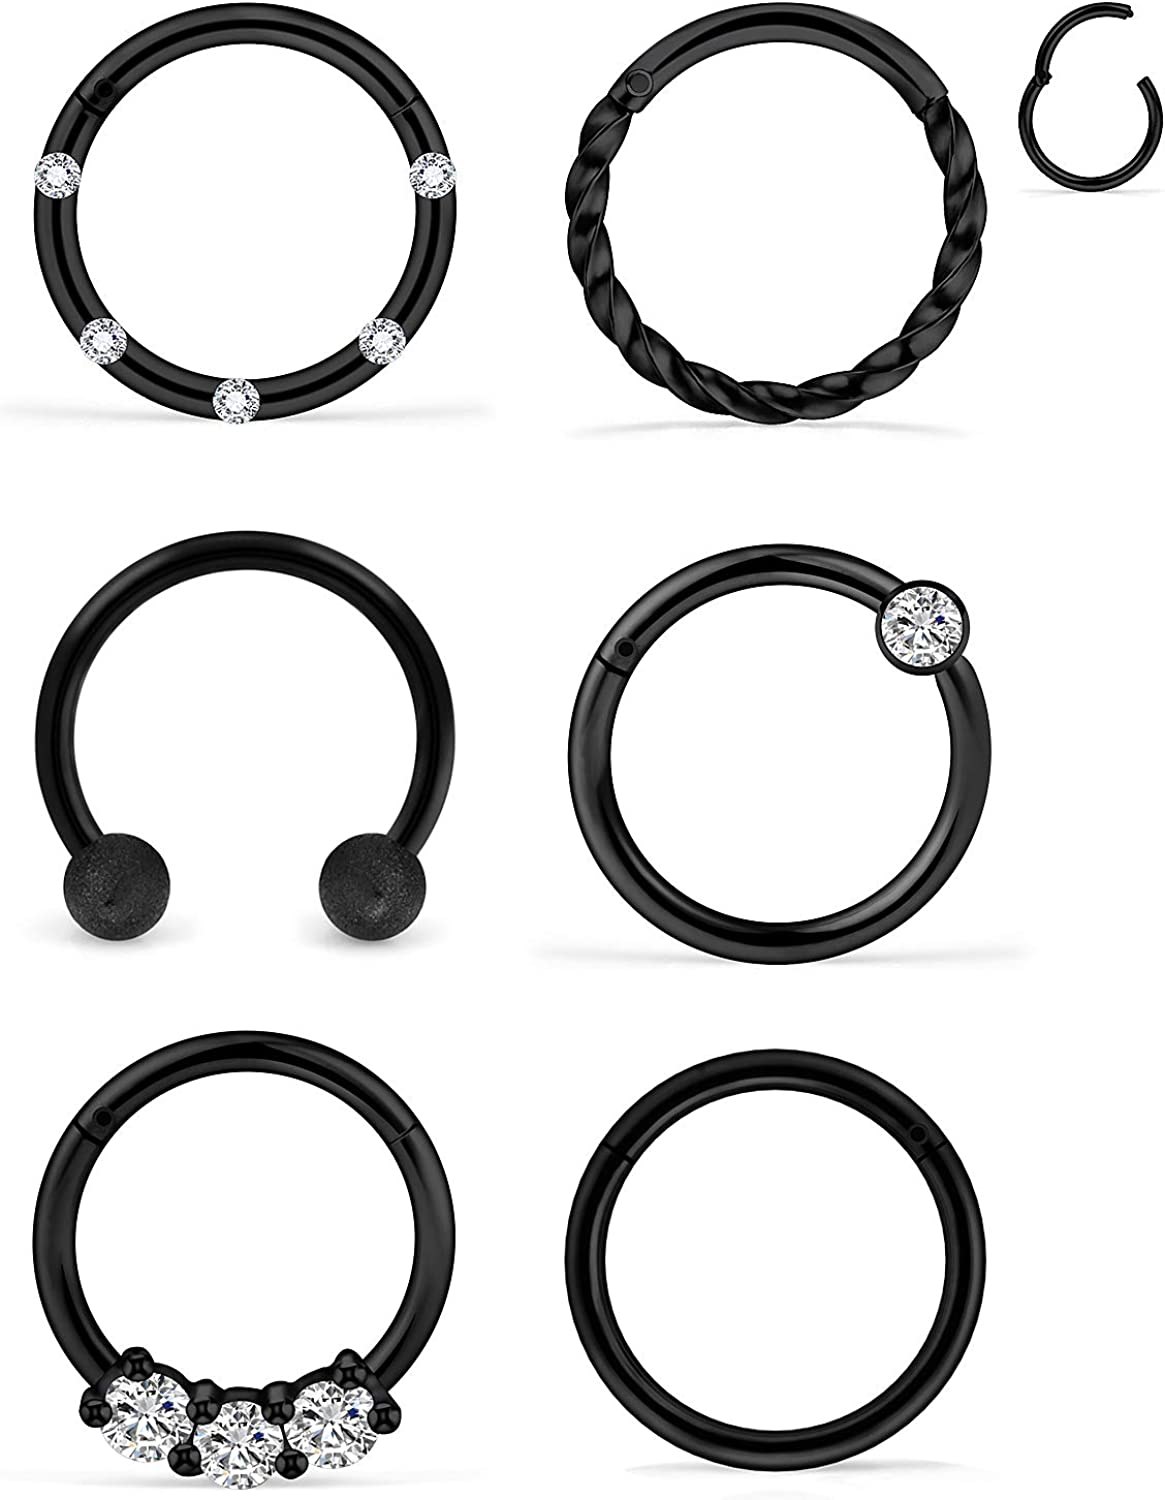 Body piercing 316L SS Crystal Design Segment Ring Conch Tragus hoop Septum clicker Daith Nose ring 16g Hinged Rook